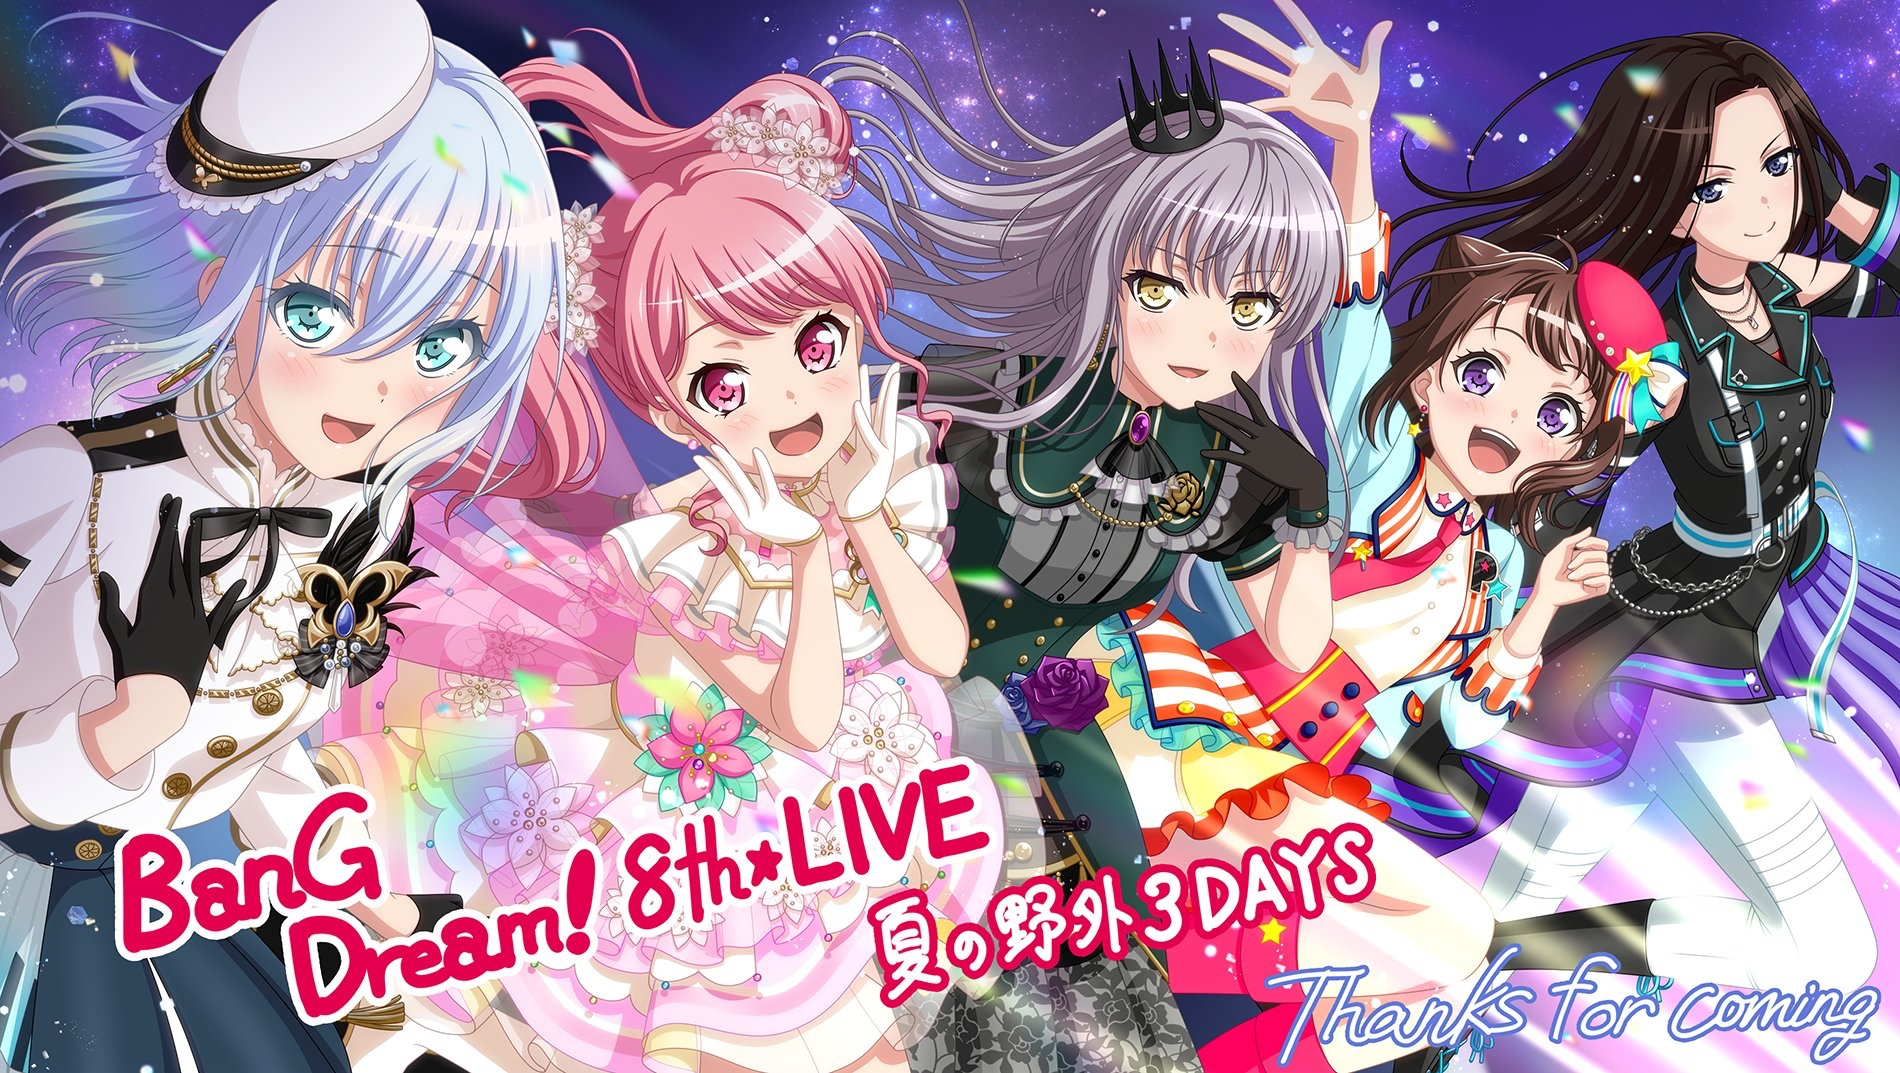 Bandori 8th Live! Thank you